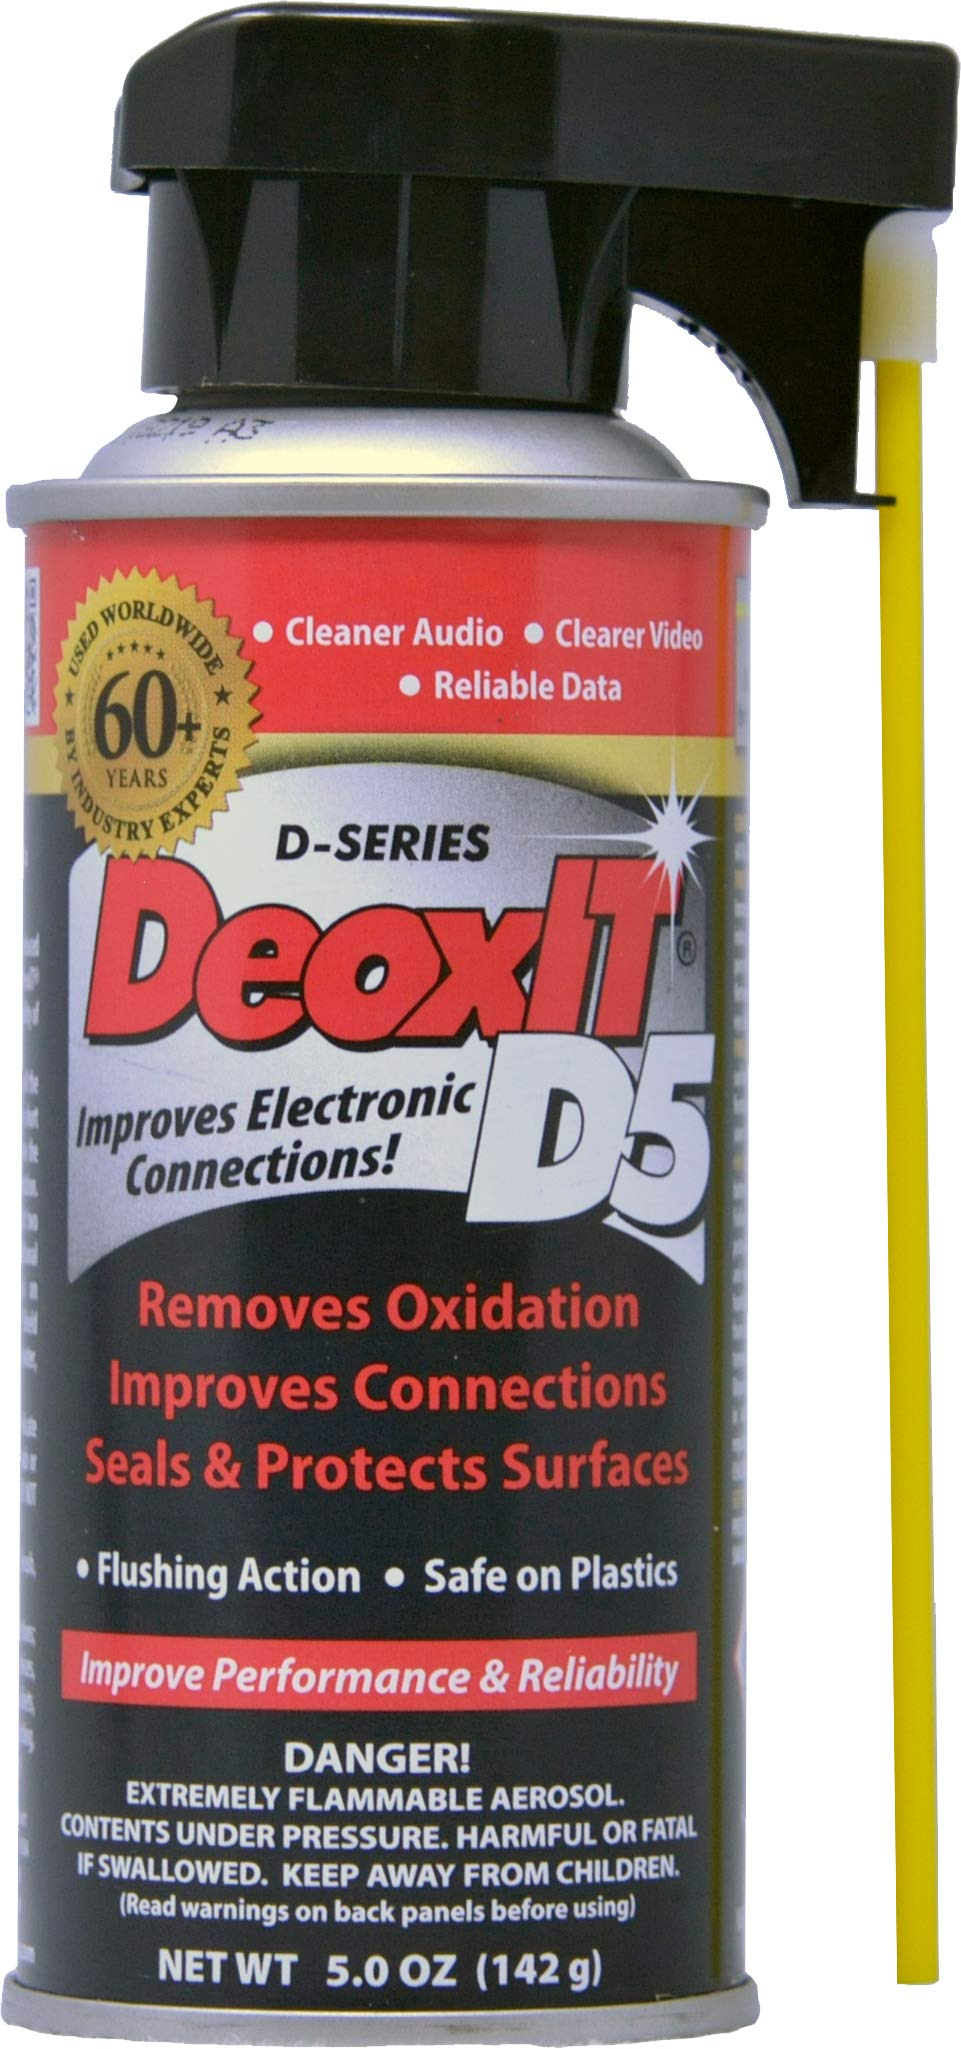 DeoxIT D5S-6 Spray, More Than A Contact Cleaner, 142g, Integrated Straw, Pack of 1